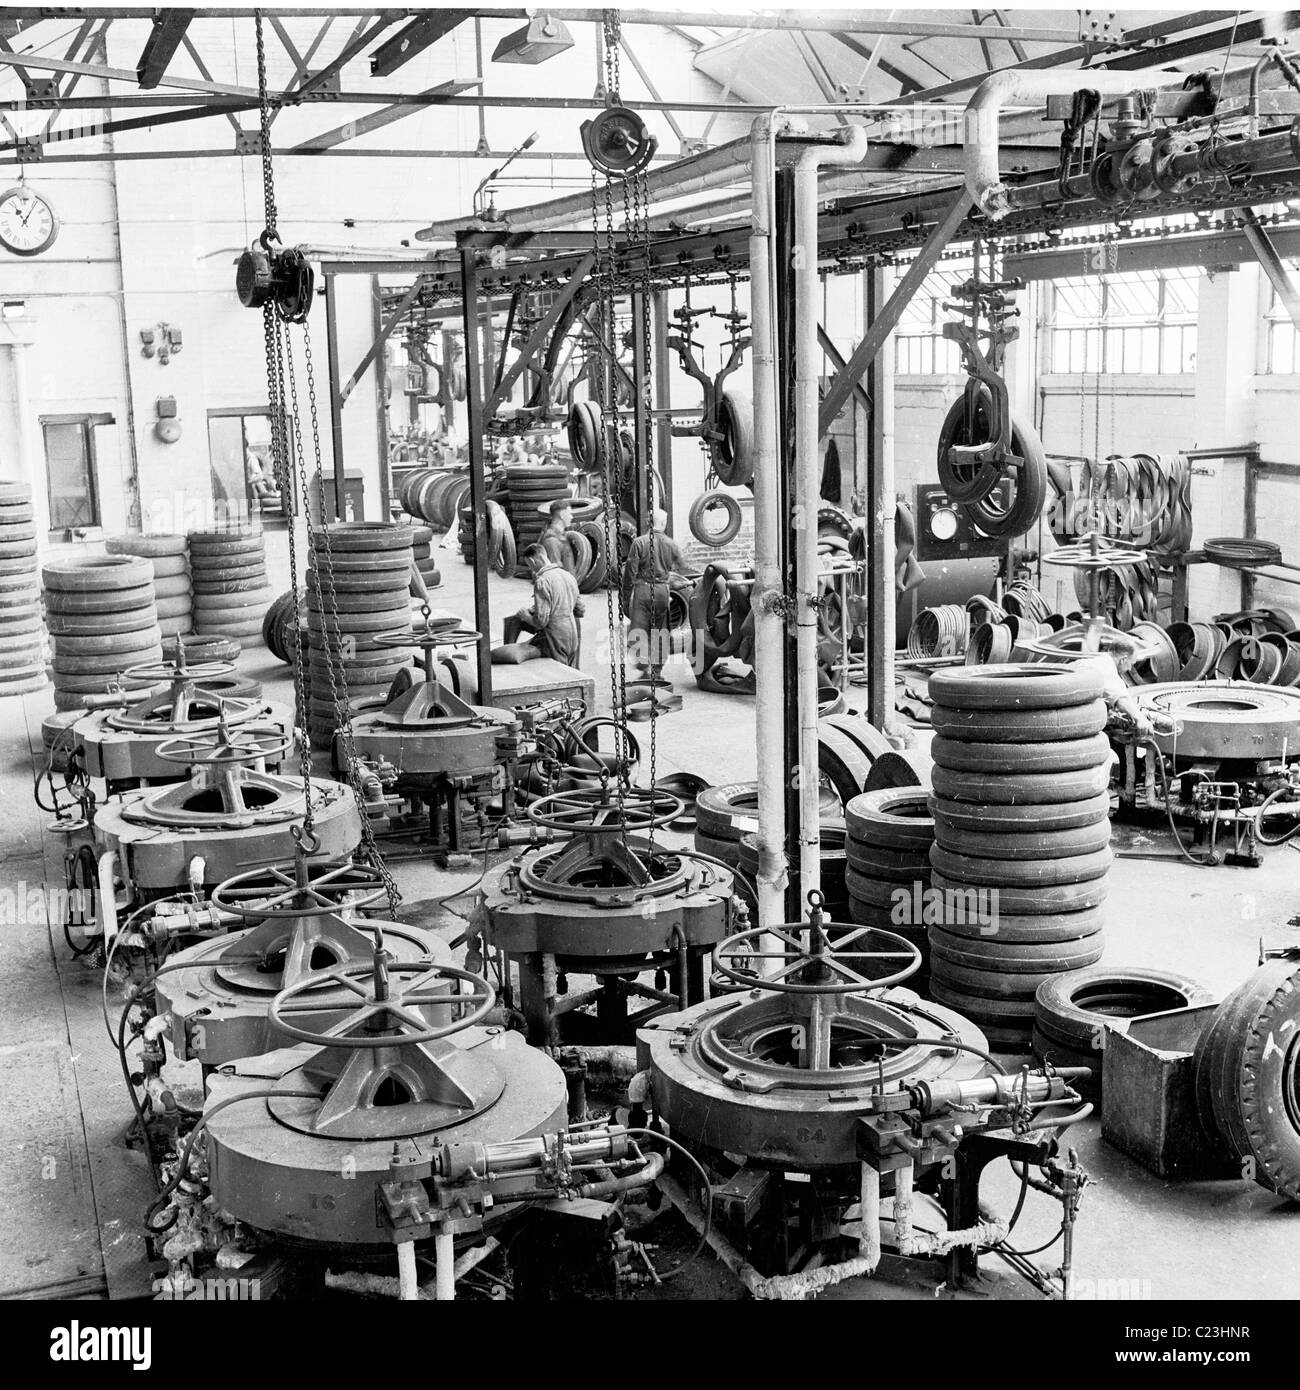 England, 1950s. Inside view of the Associated Tyre Services (ATS) factory, Basingstoke, England. - Stock Image